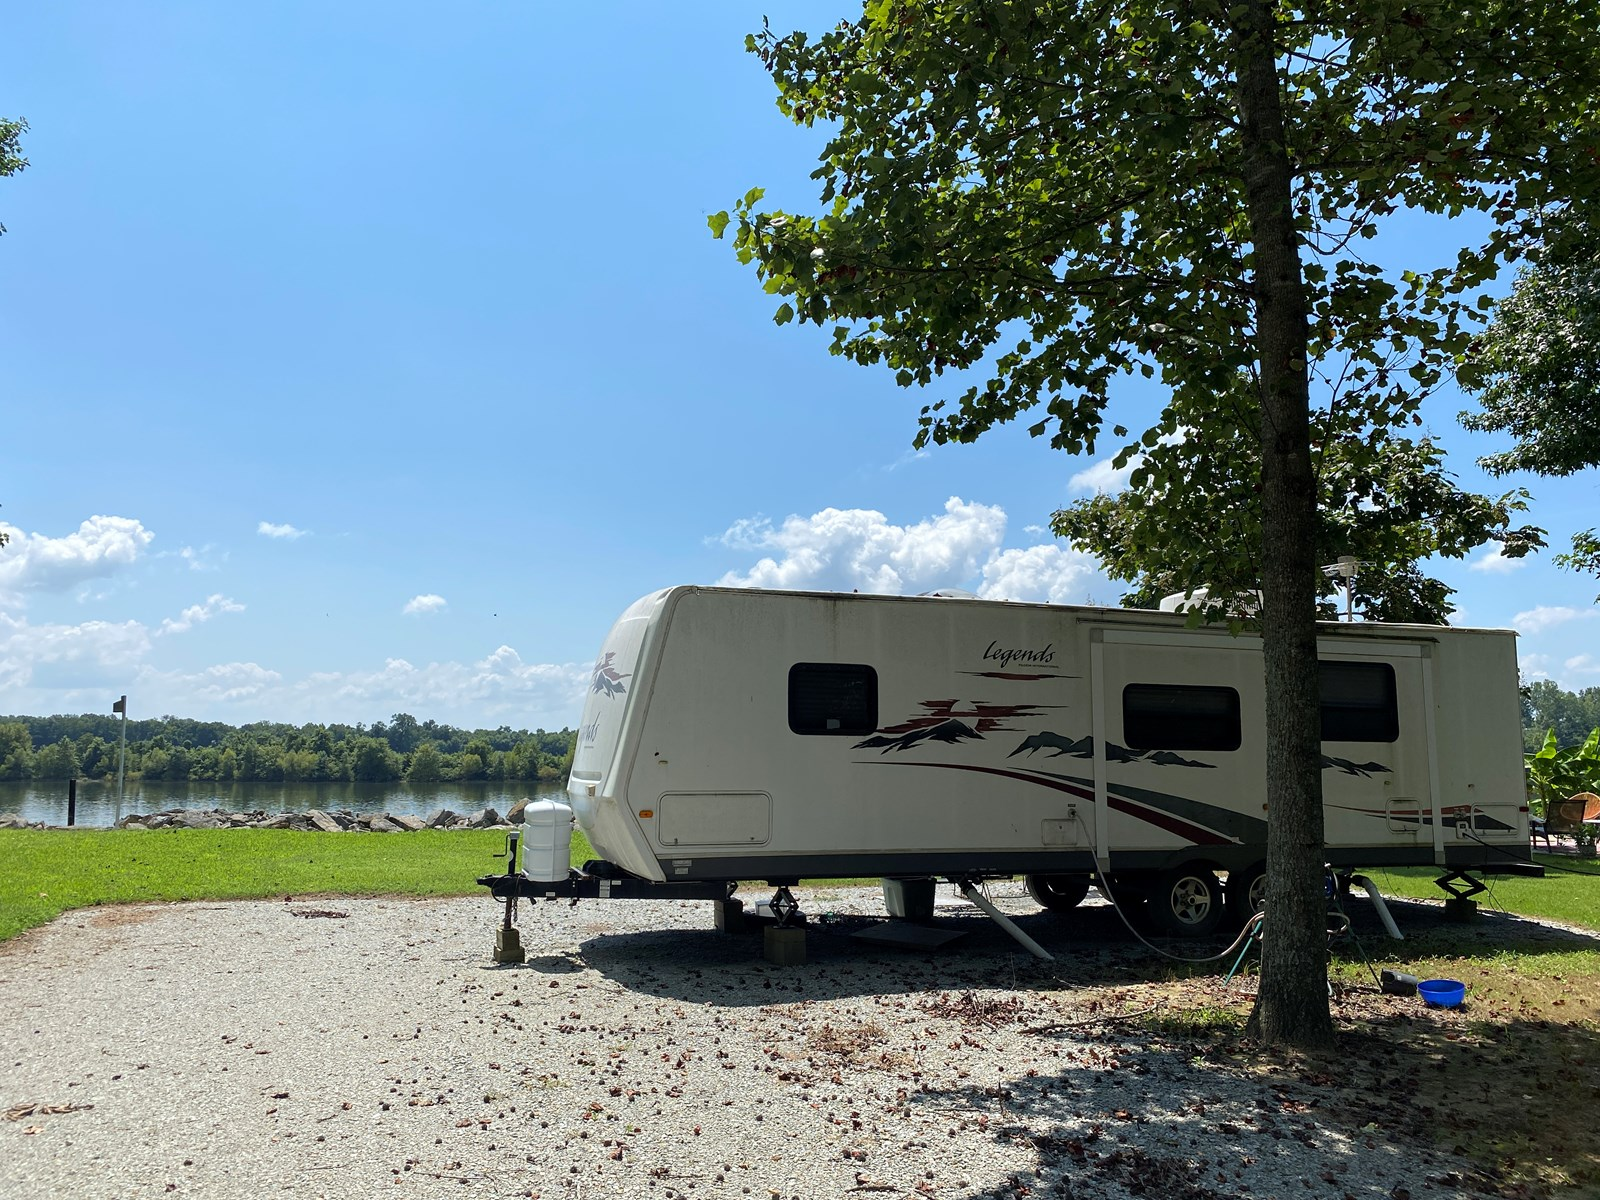 RIVER LOT FOR SALE IN TN W/CAMPER, SEPTIC, WATER, ELECTRIC